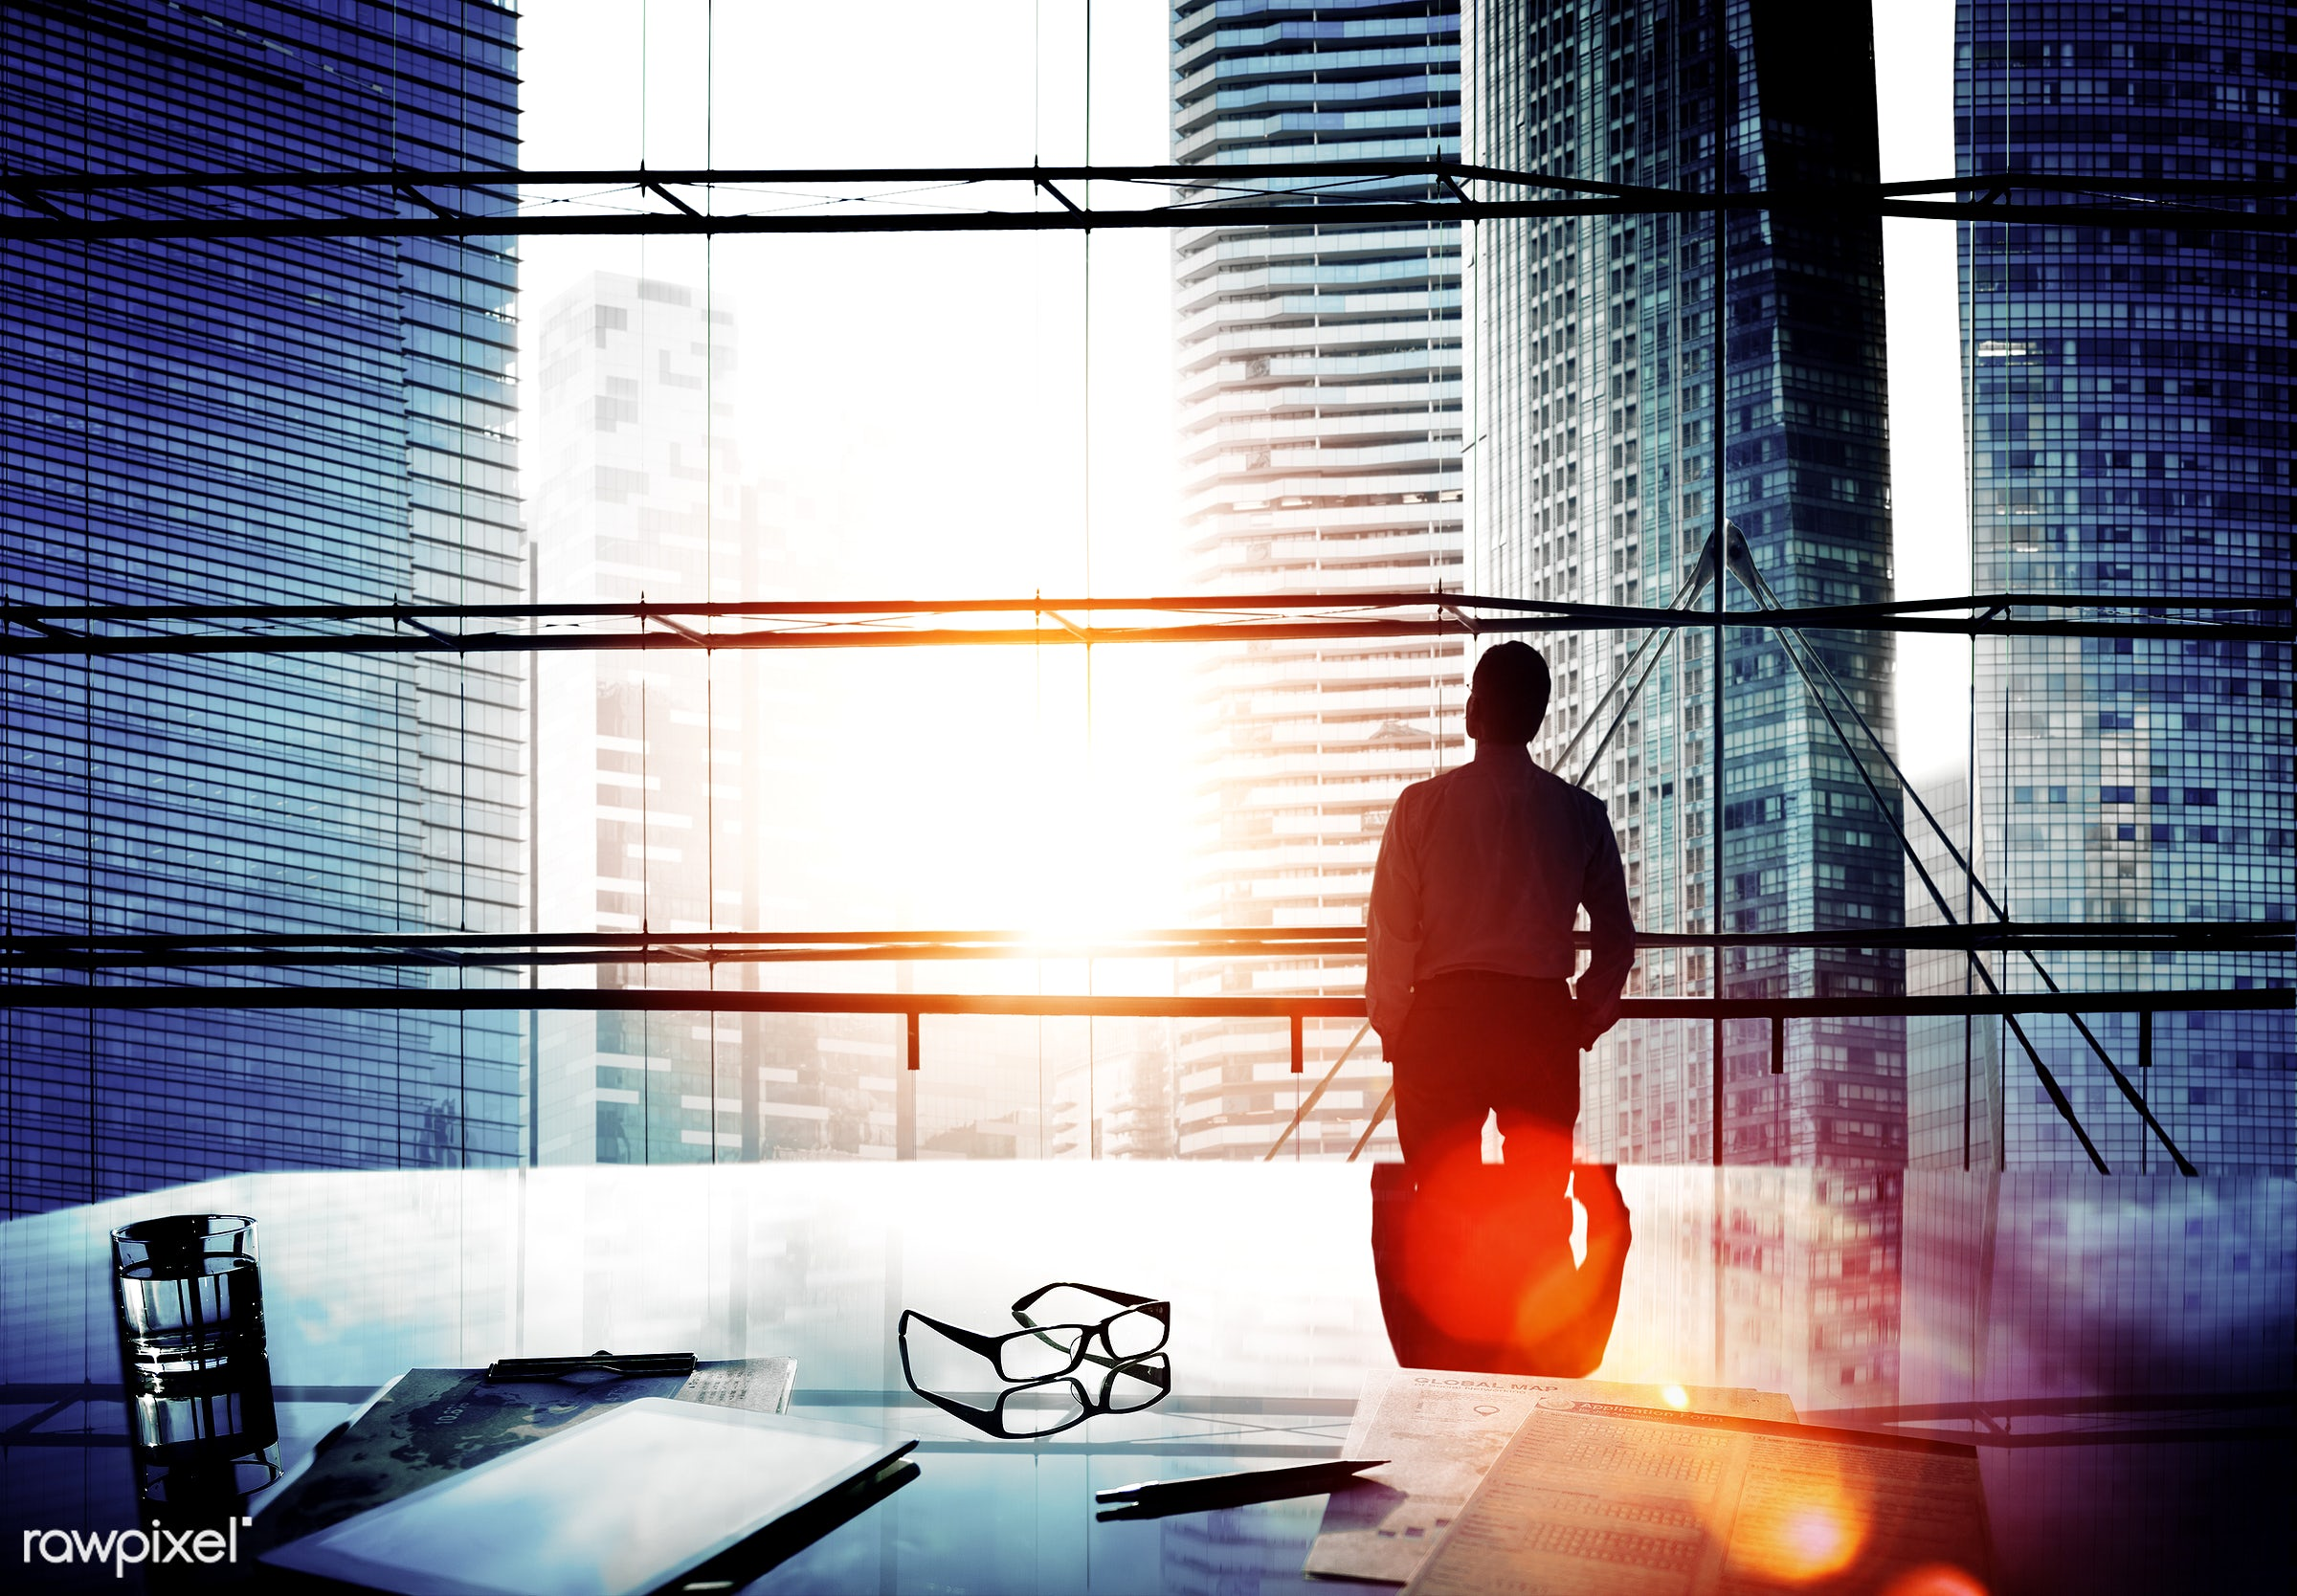 alone, aspiration, backlit, boss, break time, buildings, business, businessman, city, city life, cityscape, contemplating,...